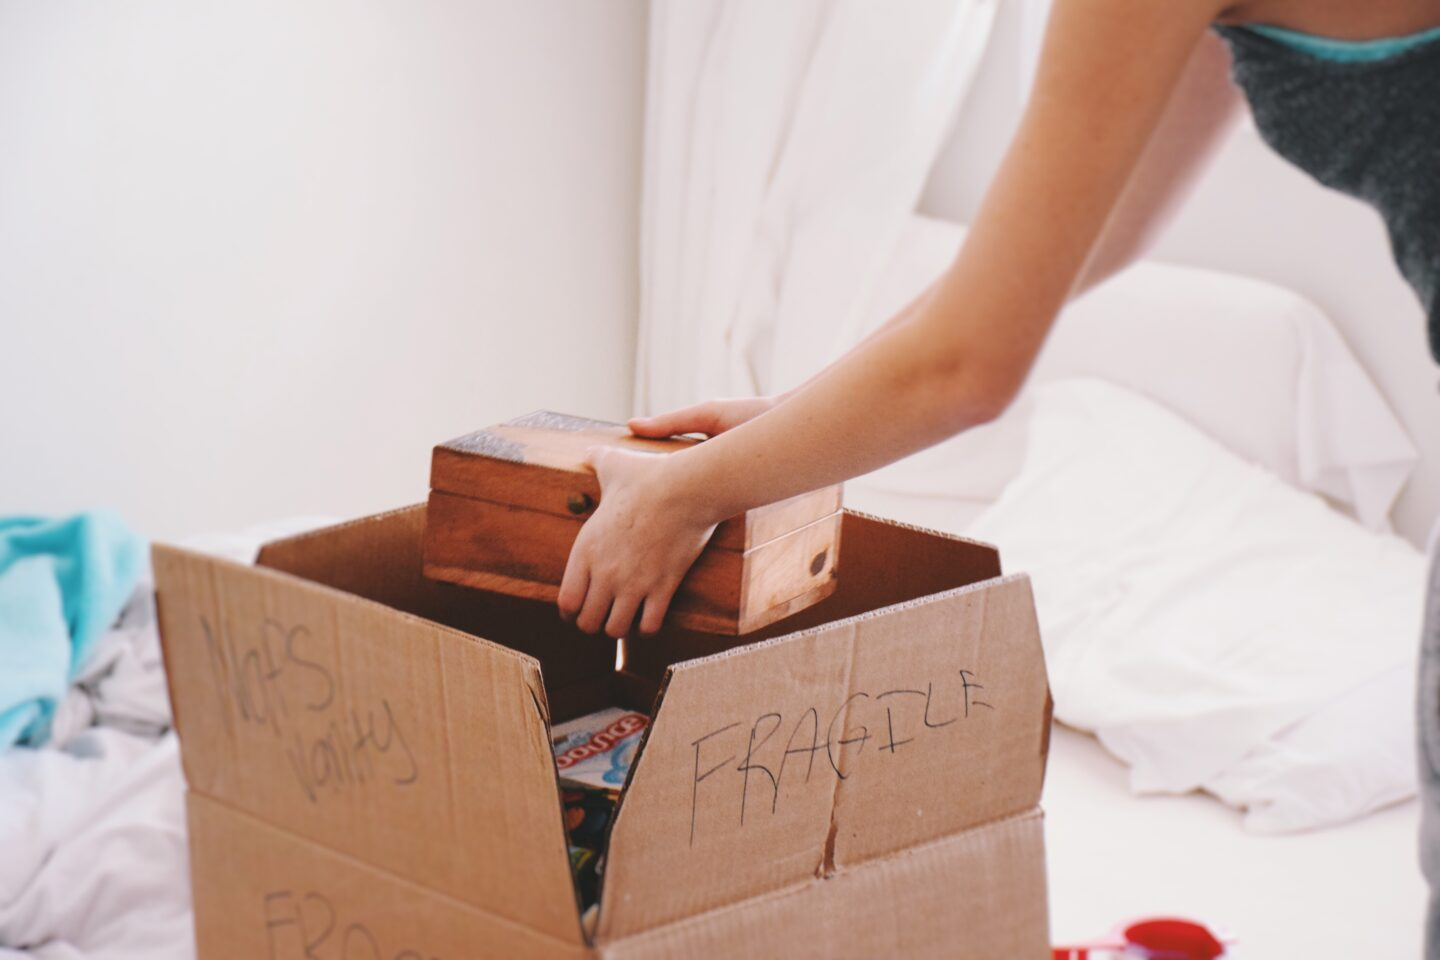 The Ultimate Guide For College Move-In Day